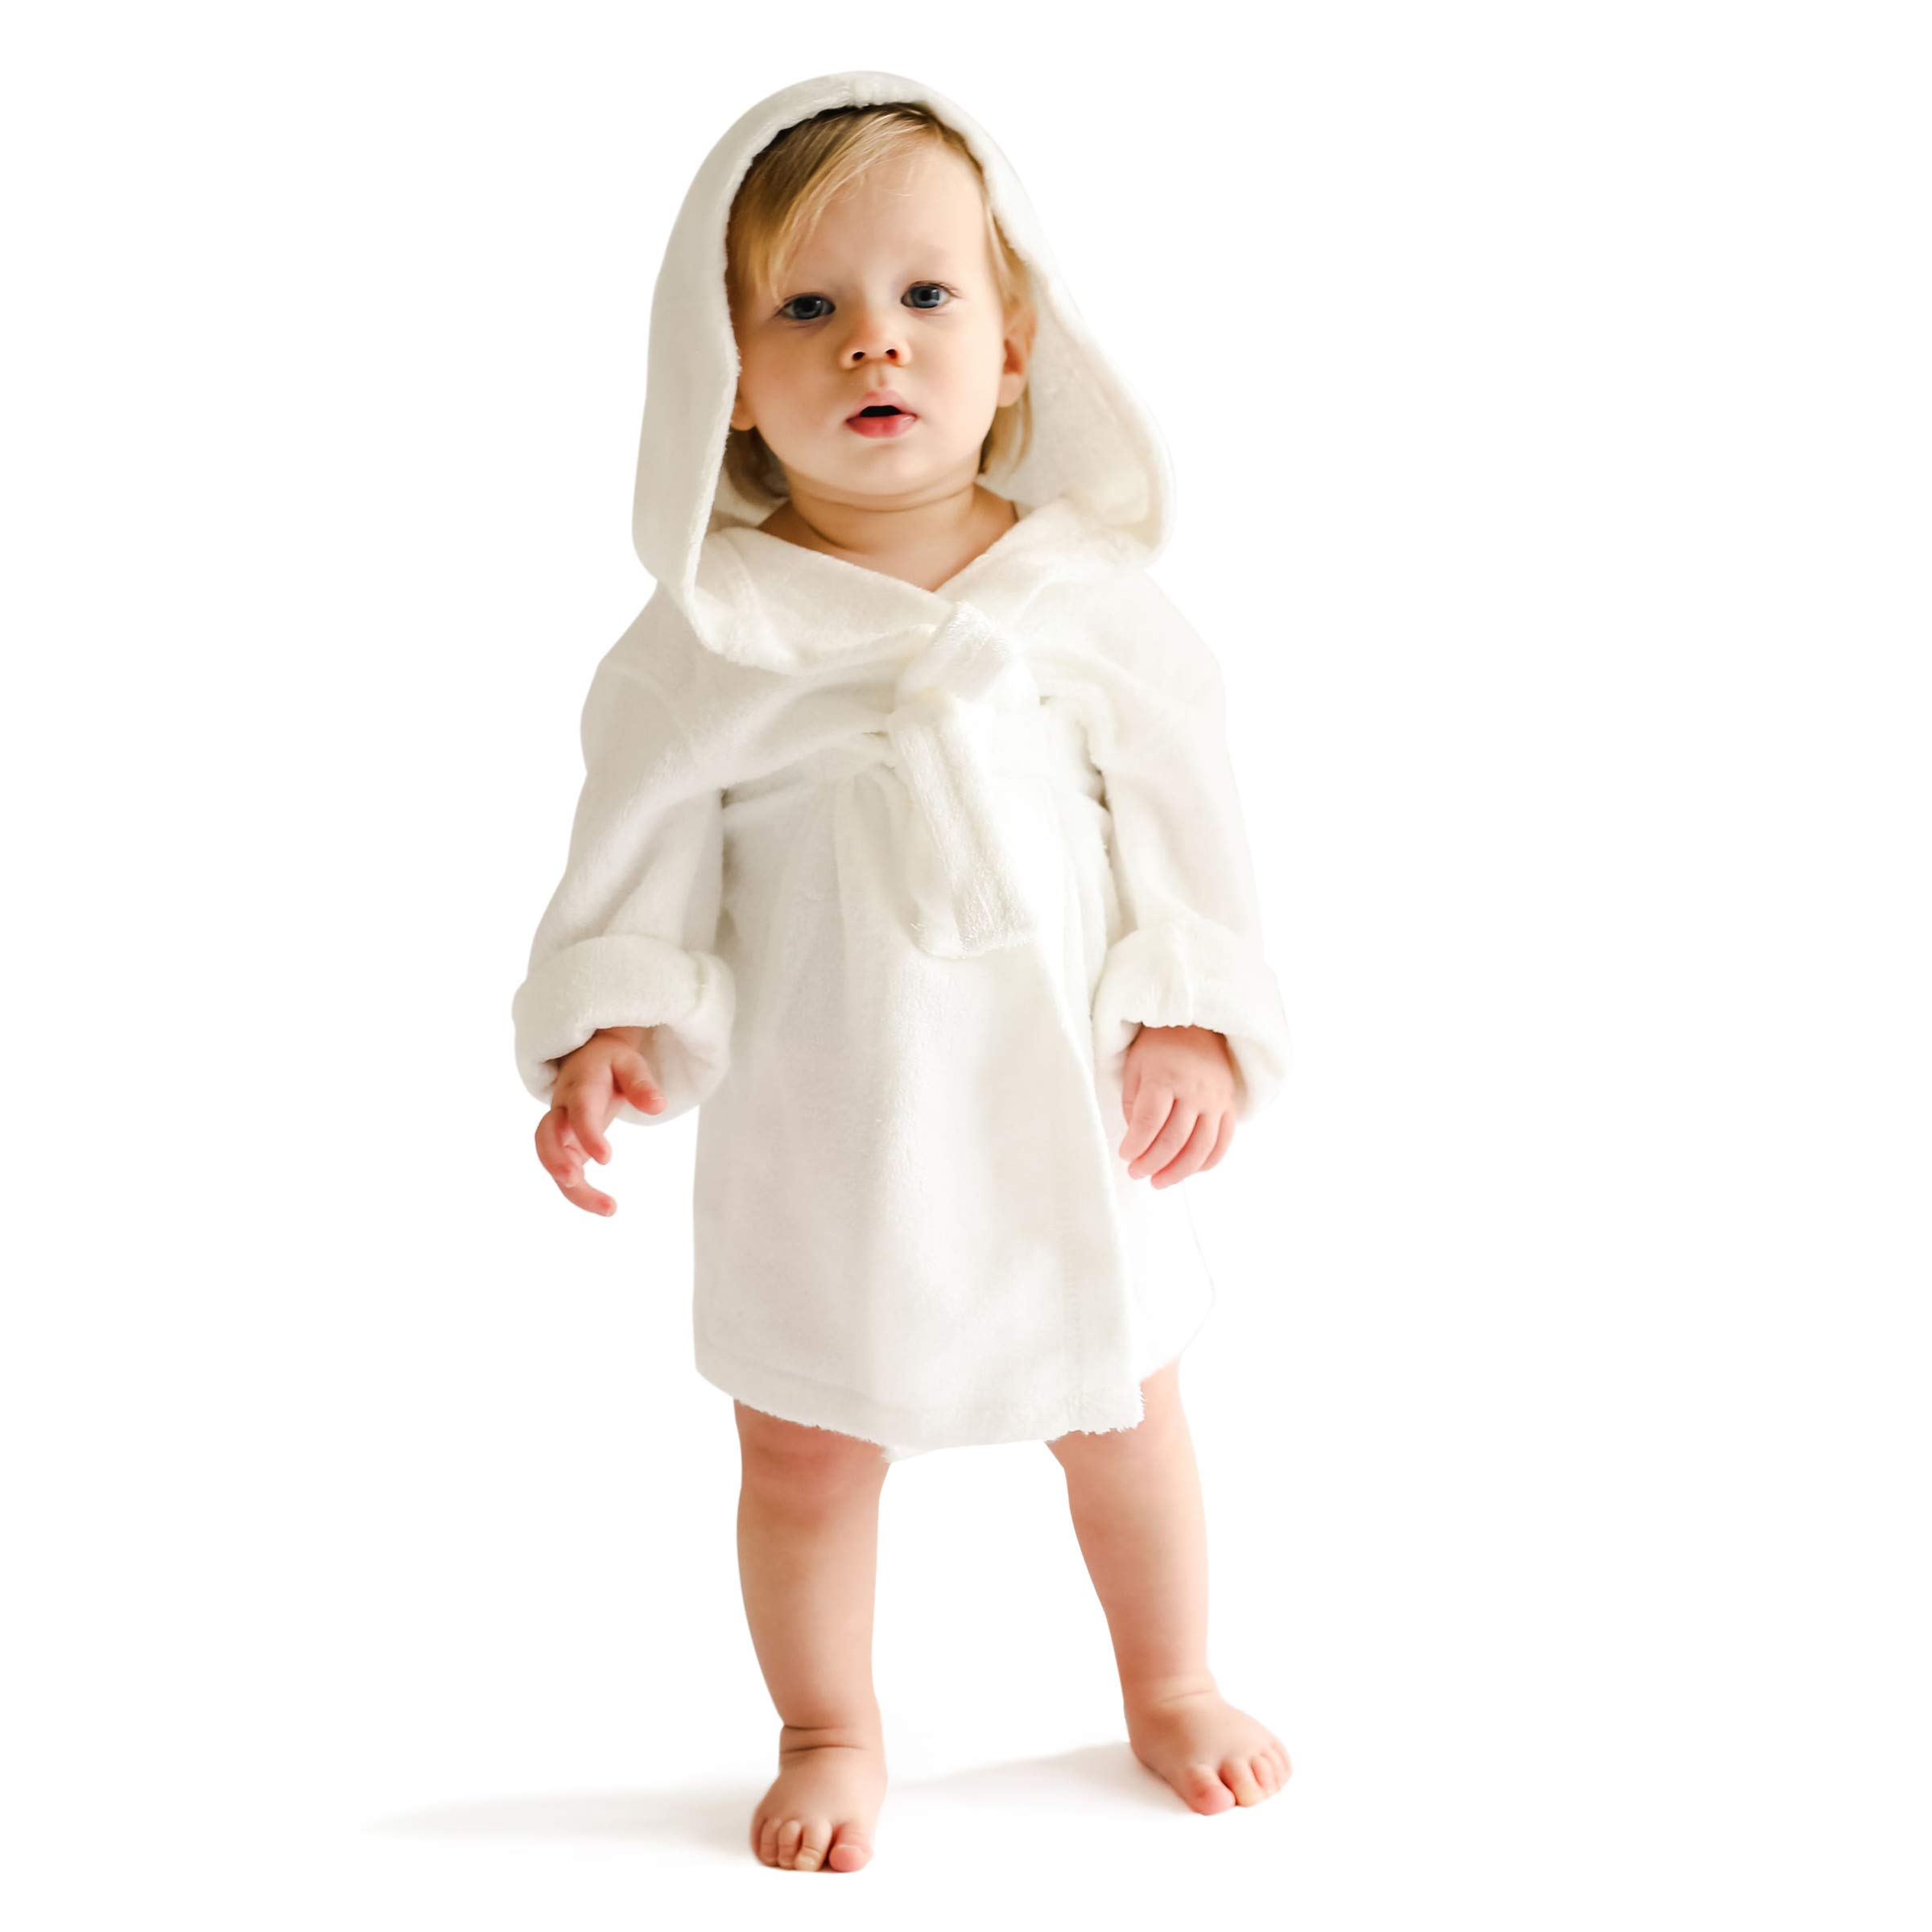 Extra Soft Bamboo Hooded Bathrobe for Kids by Natemia | Super Absorbent and Hypoallergenic | Ideal Baby Registry Gift by Natemia